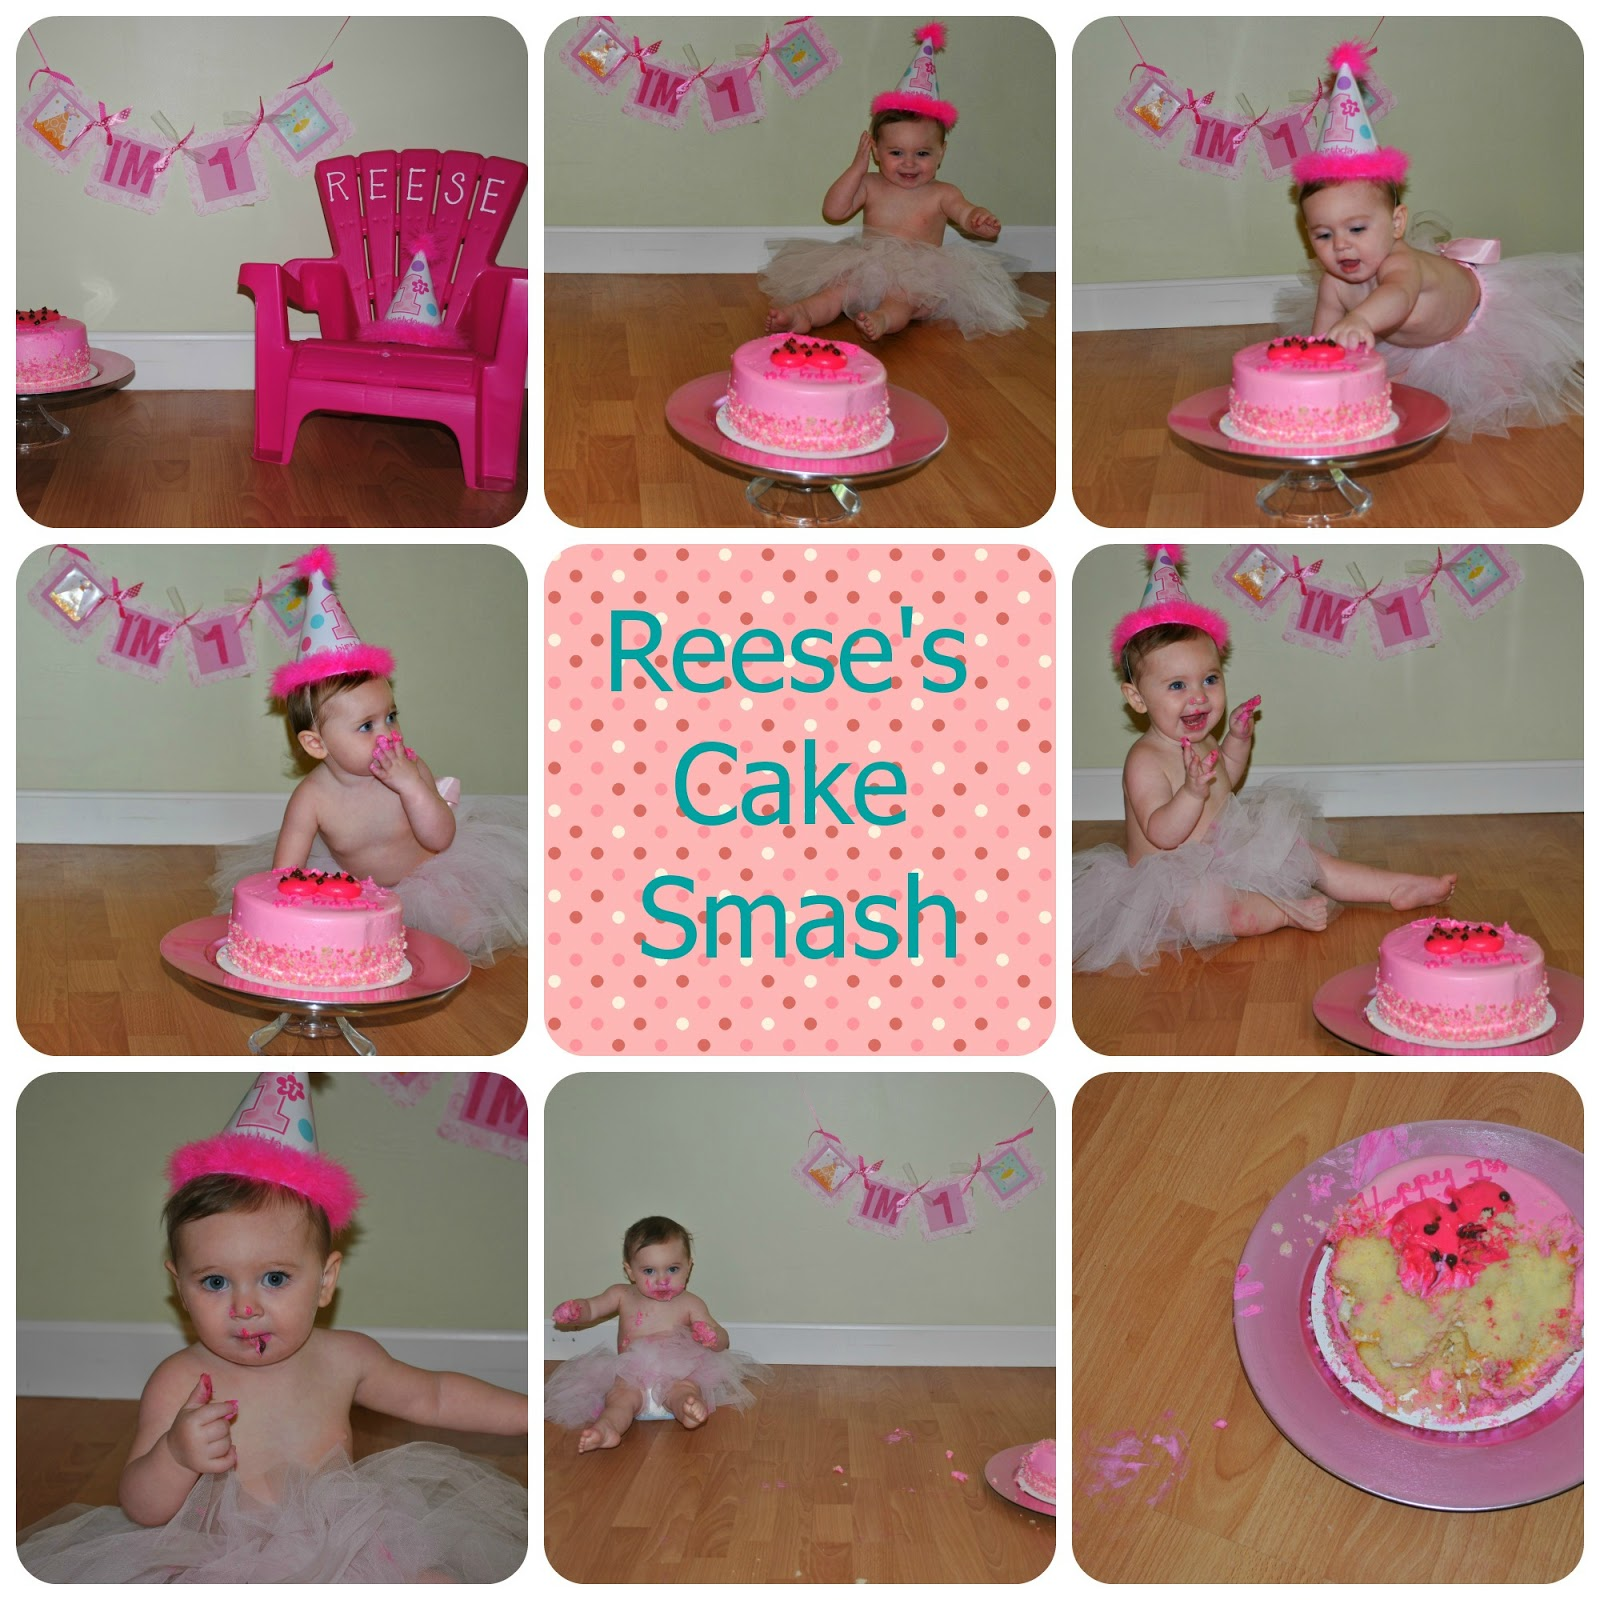 DIY Cake Smash Photo Shoot Craftbnb